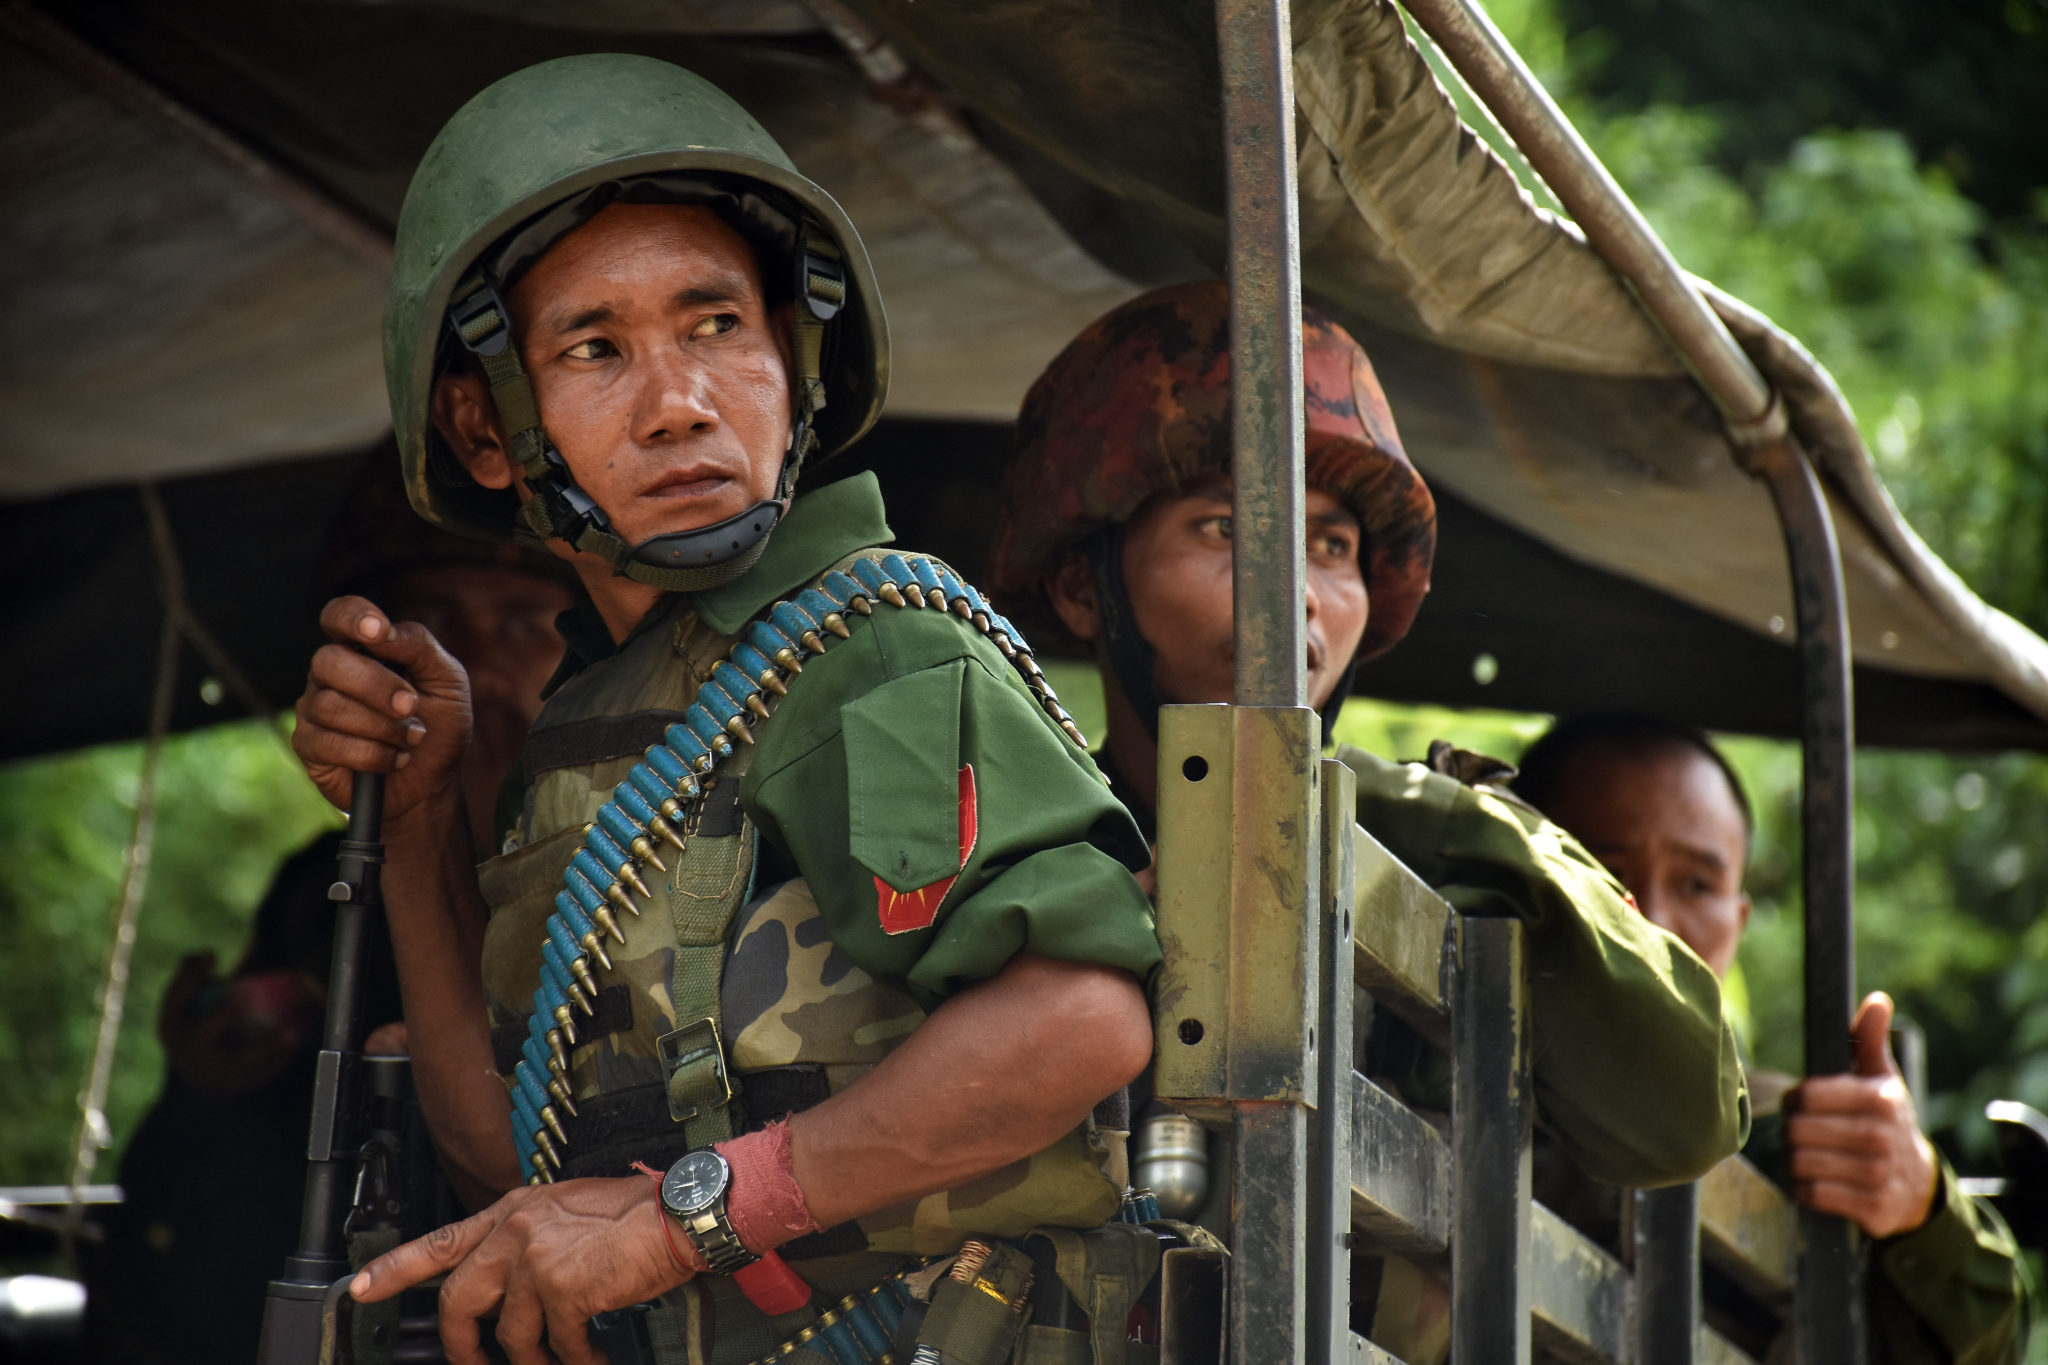 Myanmar: Military atrocities 'relentless and ruthless' in northern Shan State